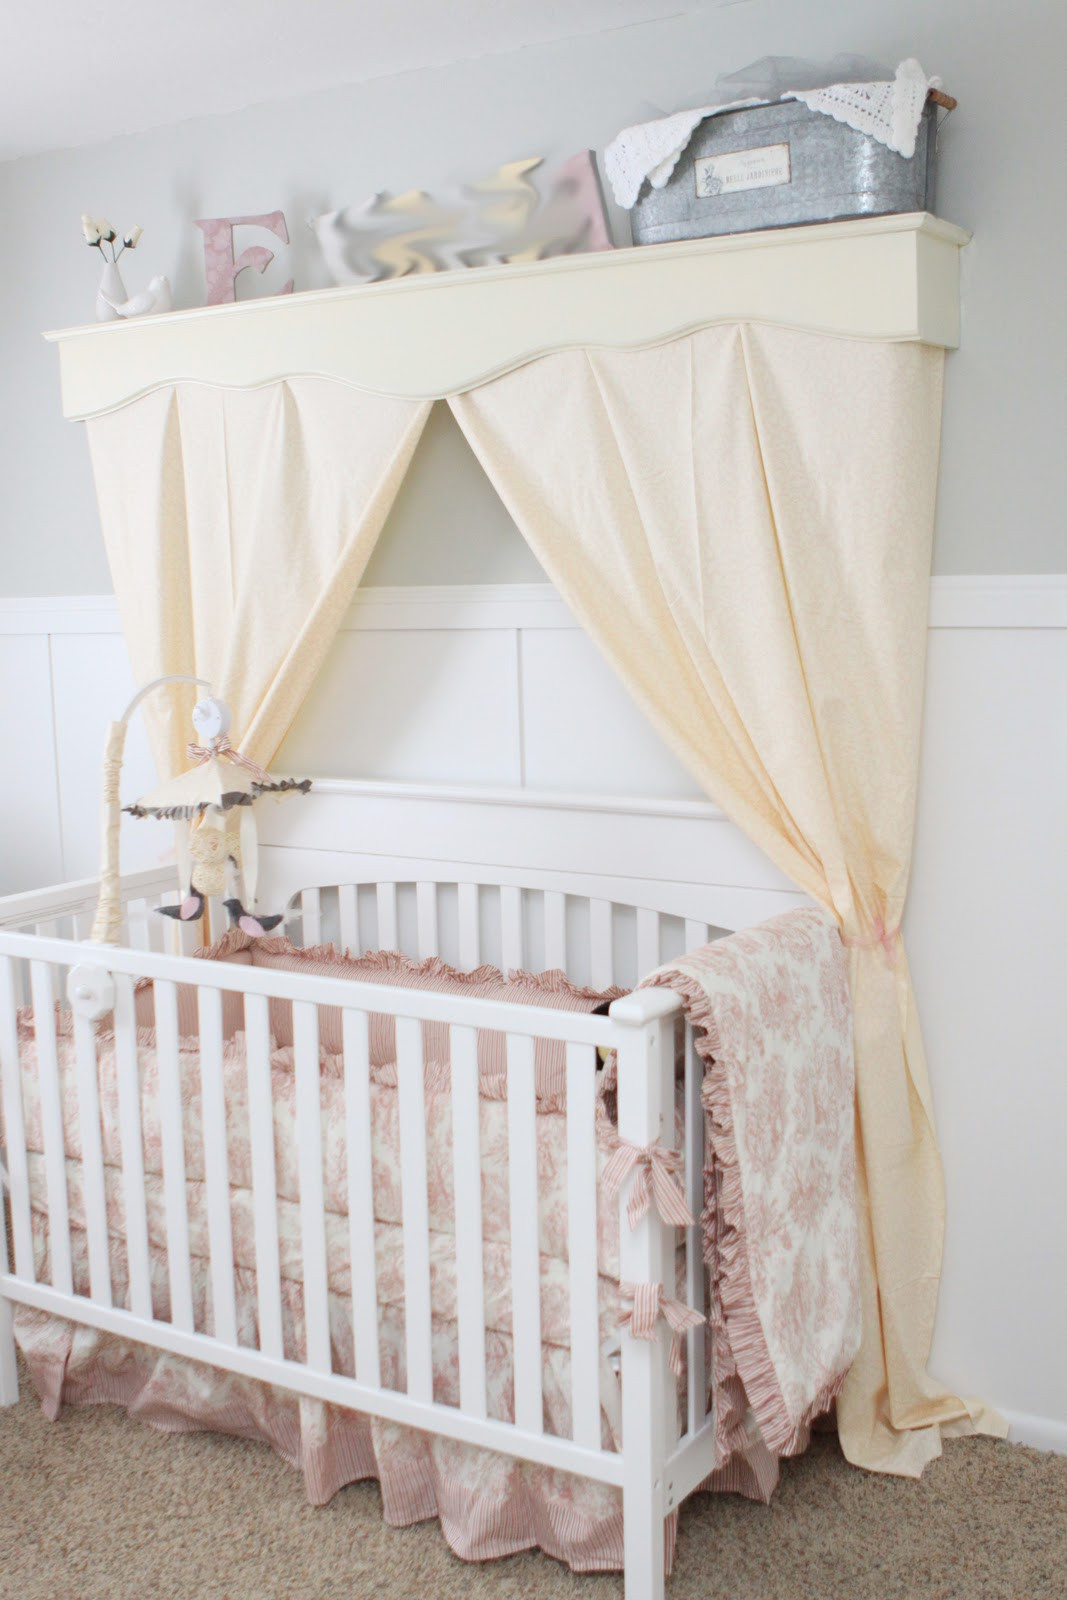 Best ideas about DIY Baby Nurseries . Save or Pin Home Sweet Home Baby Nursery Charming DIY Decor Now.